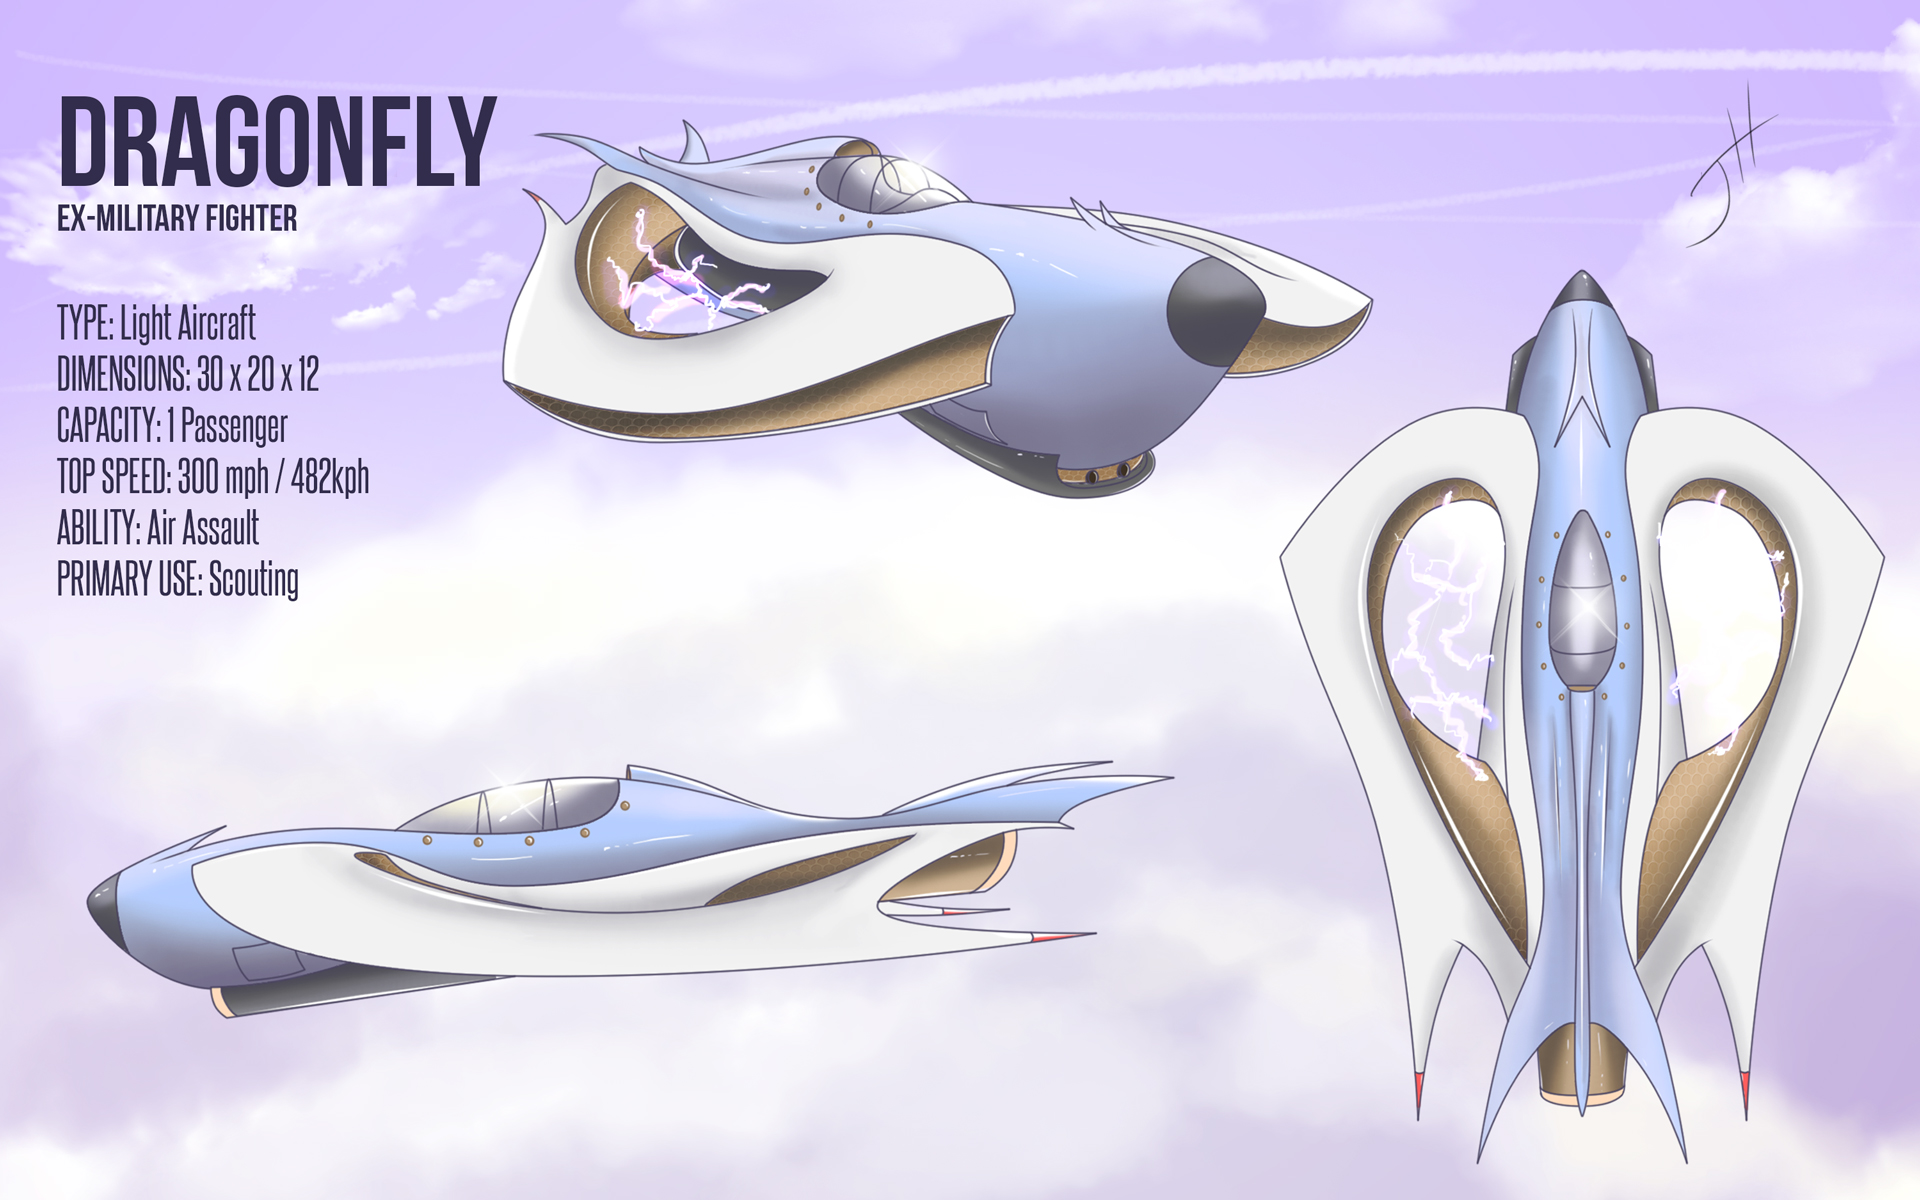 Dragonfly: Ex-Military Fighter